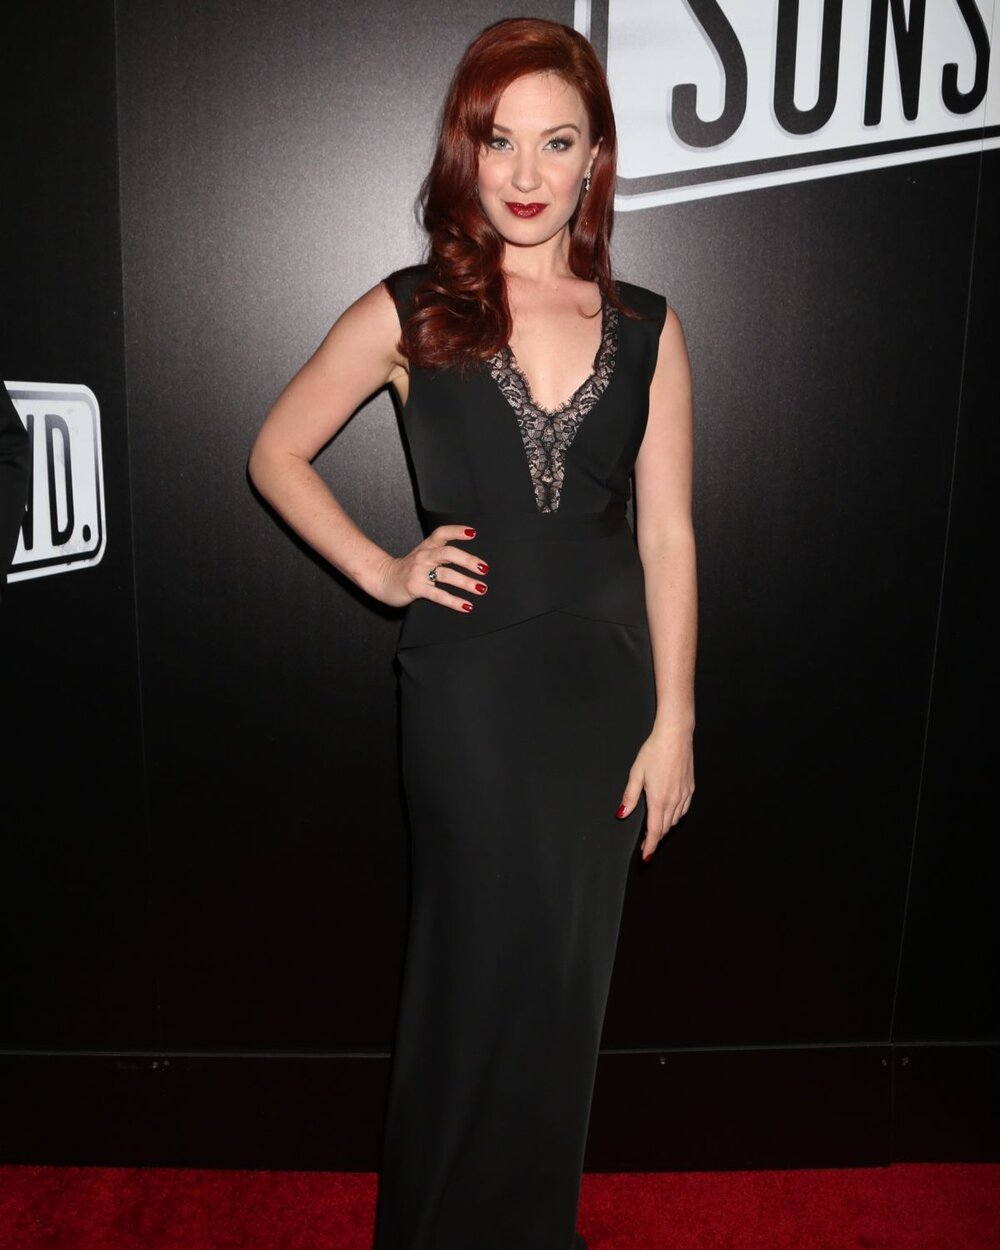 Sierra-boggess-at-sunset-blvd-play-openning-night-in-new-york-02-09-2017_2.jpg